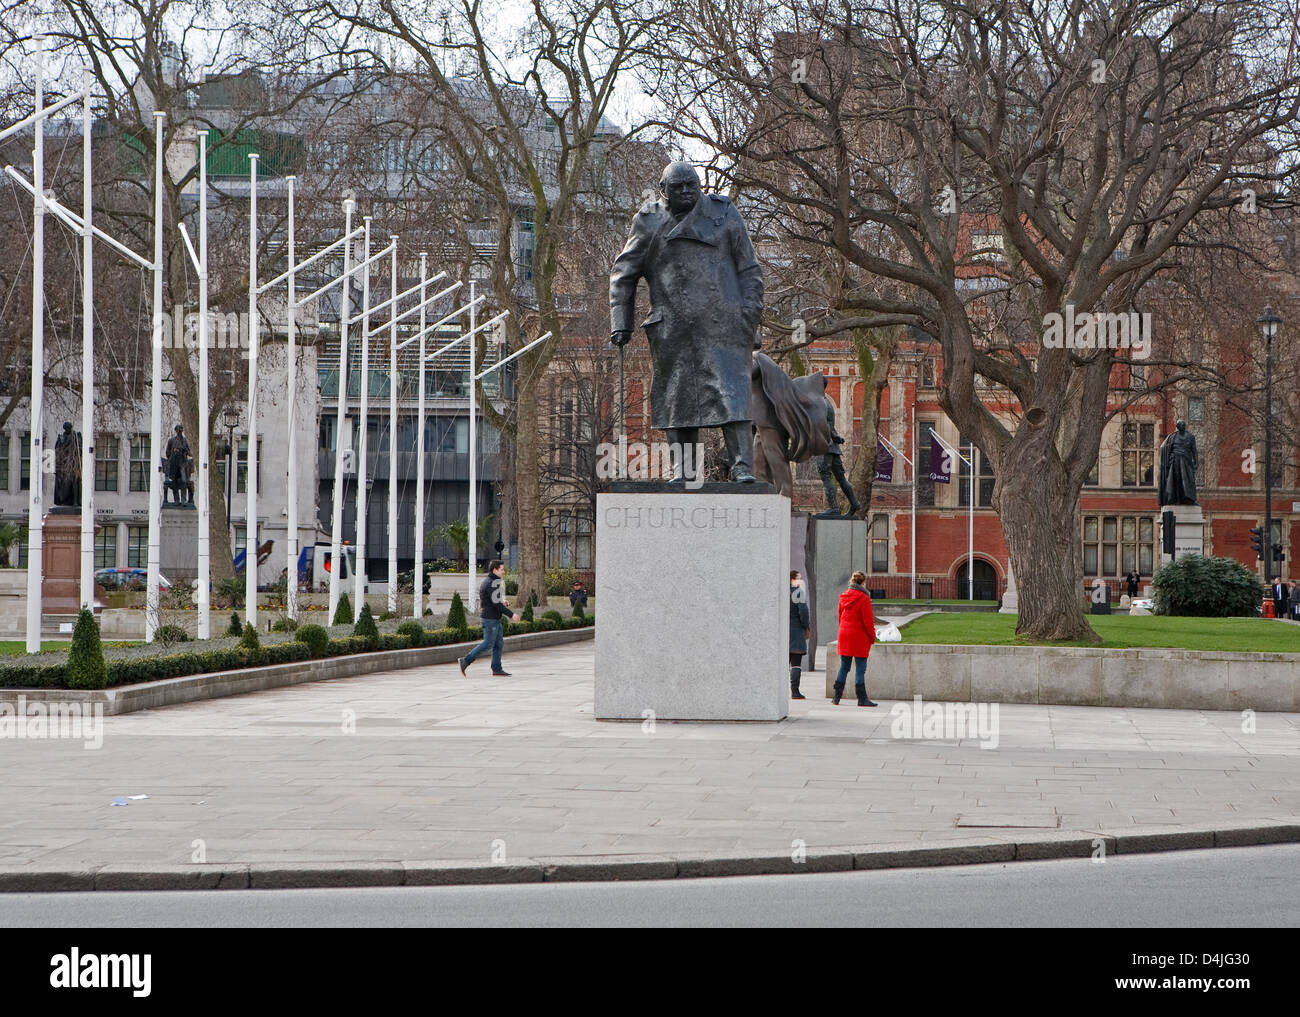 A statue of Sir Winston Churchill in Parliament Square London - Stock Image